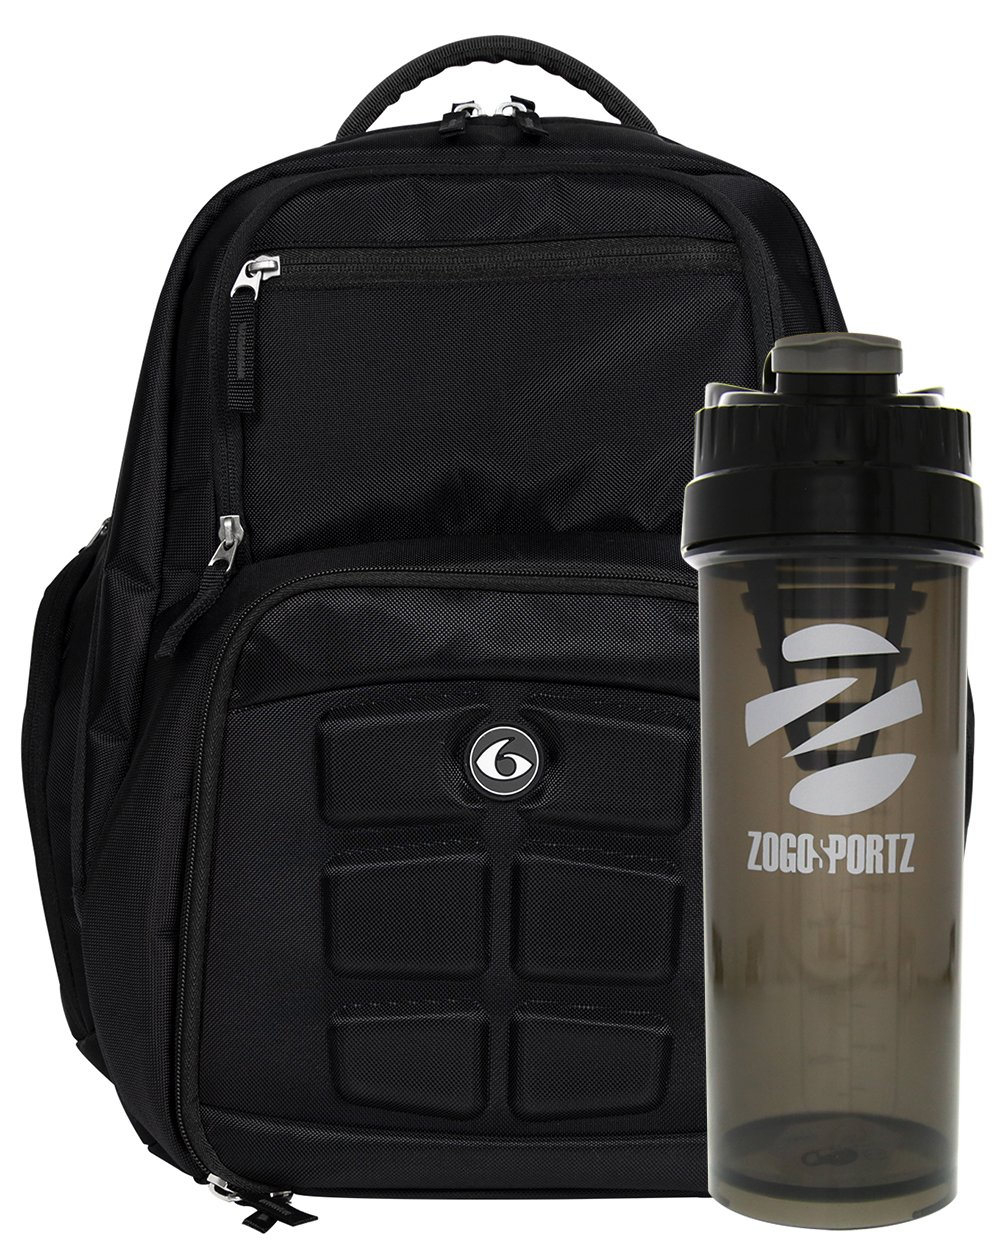 6 Pack Fitness Expedition Backpack Meal Mangement System 300 Stealth Black w/Bonus Zogosportz Cyclone Shaker